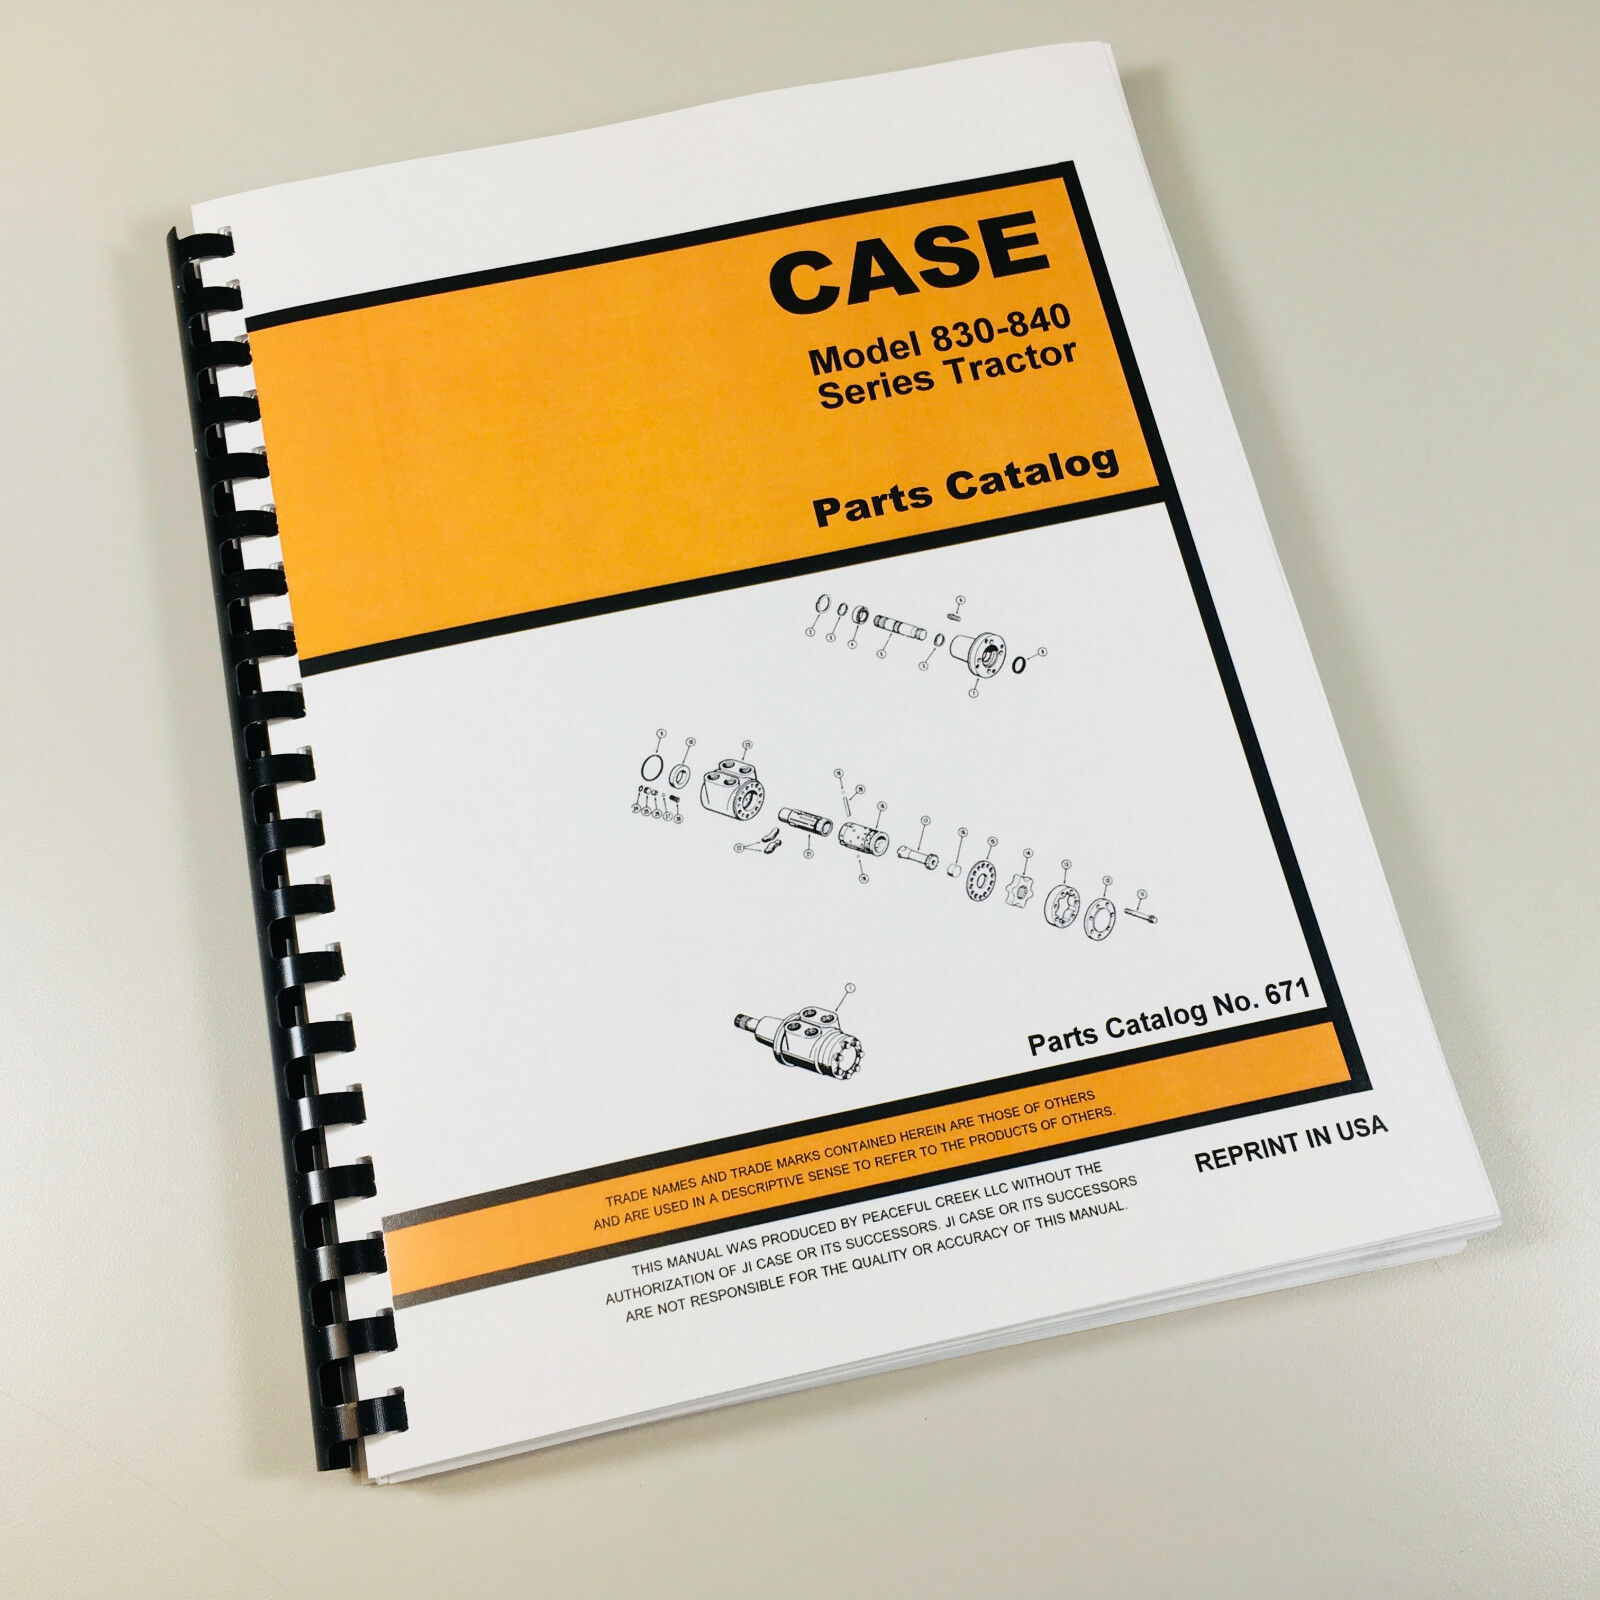 Case 830 840 Series Tractor Parts Manual Catalog Assembly Numbers Exploded  Views 1 of 7FREE Shipping See More